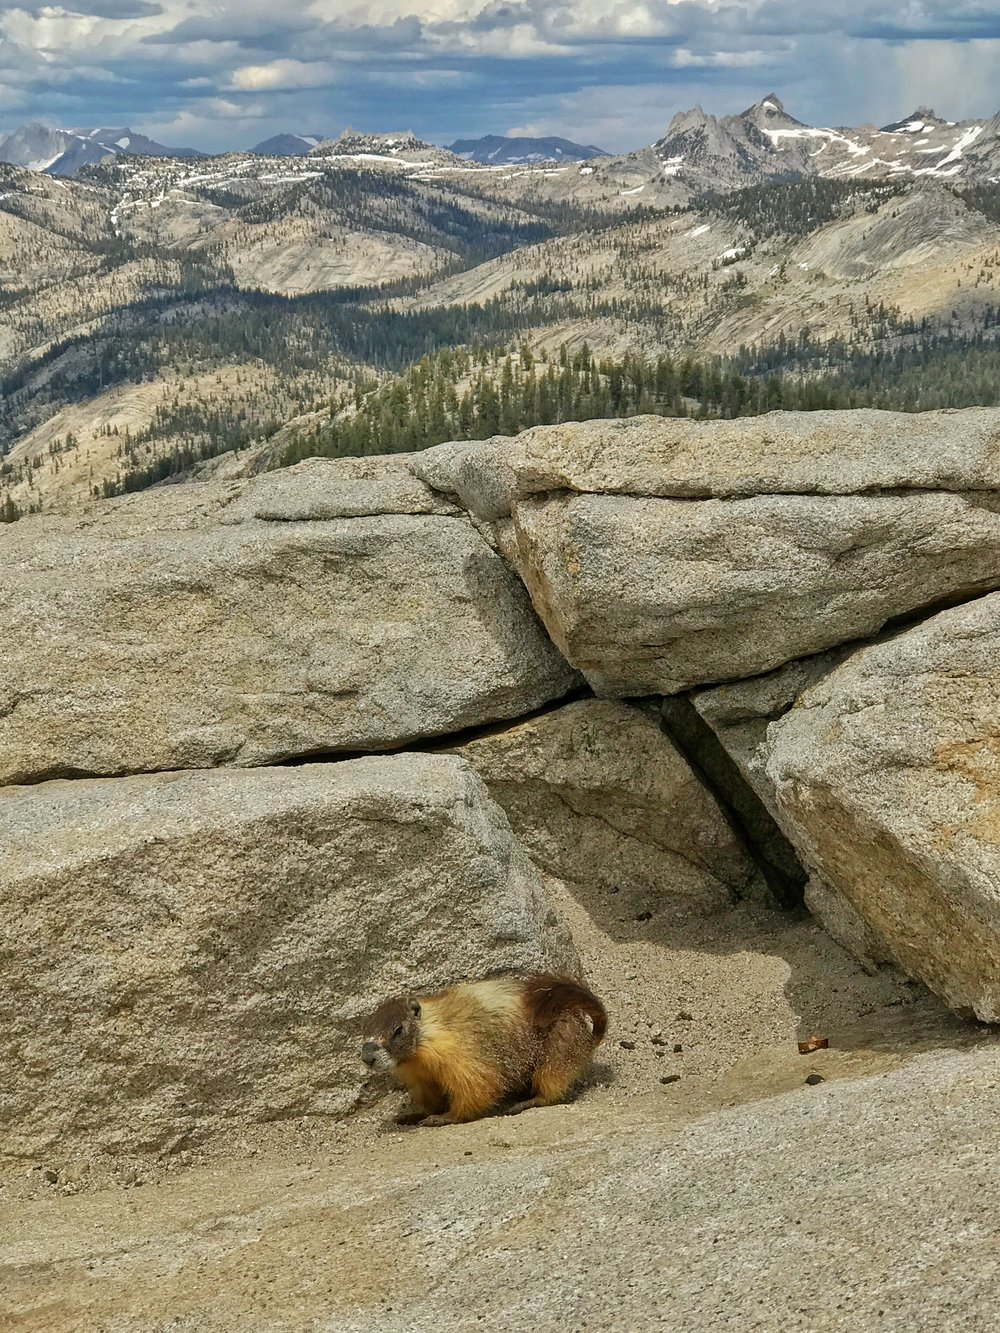 This peak is a good spot to see marmots, who thrive at higher elevations.